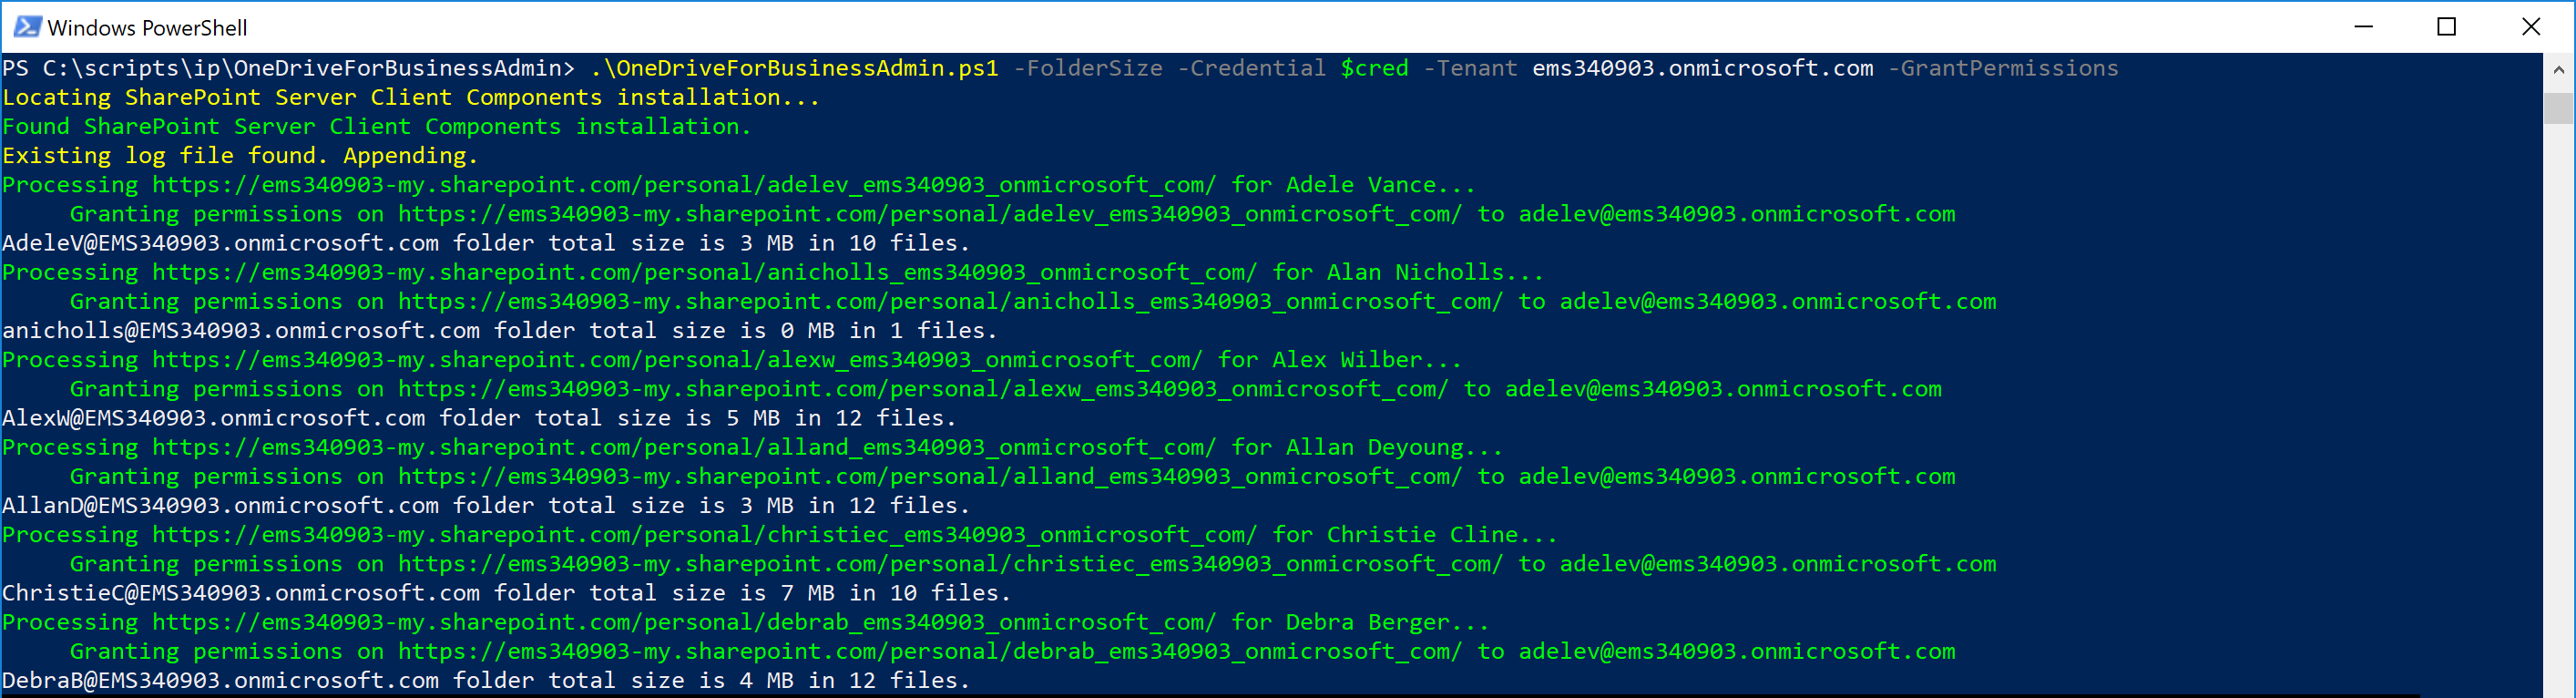 Update: OneDrive for Business Admin Tool